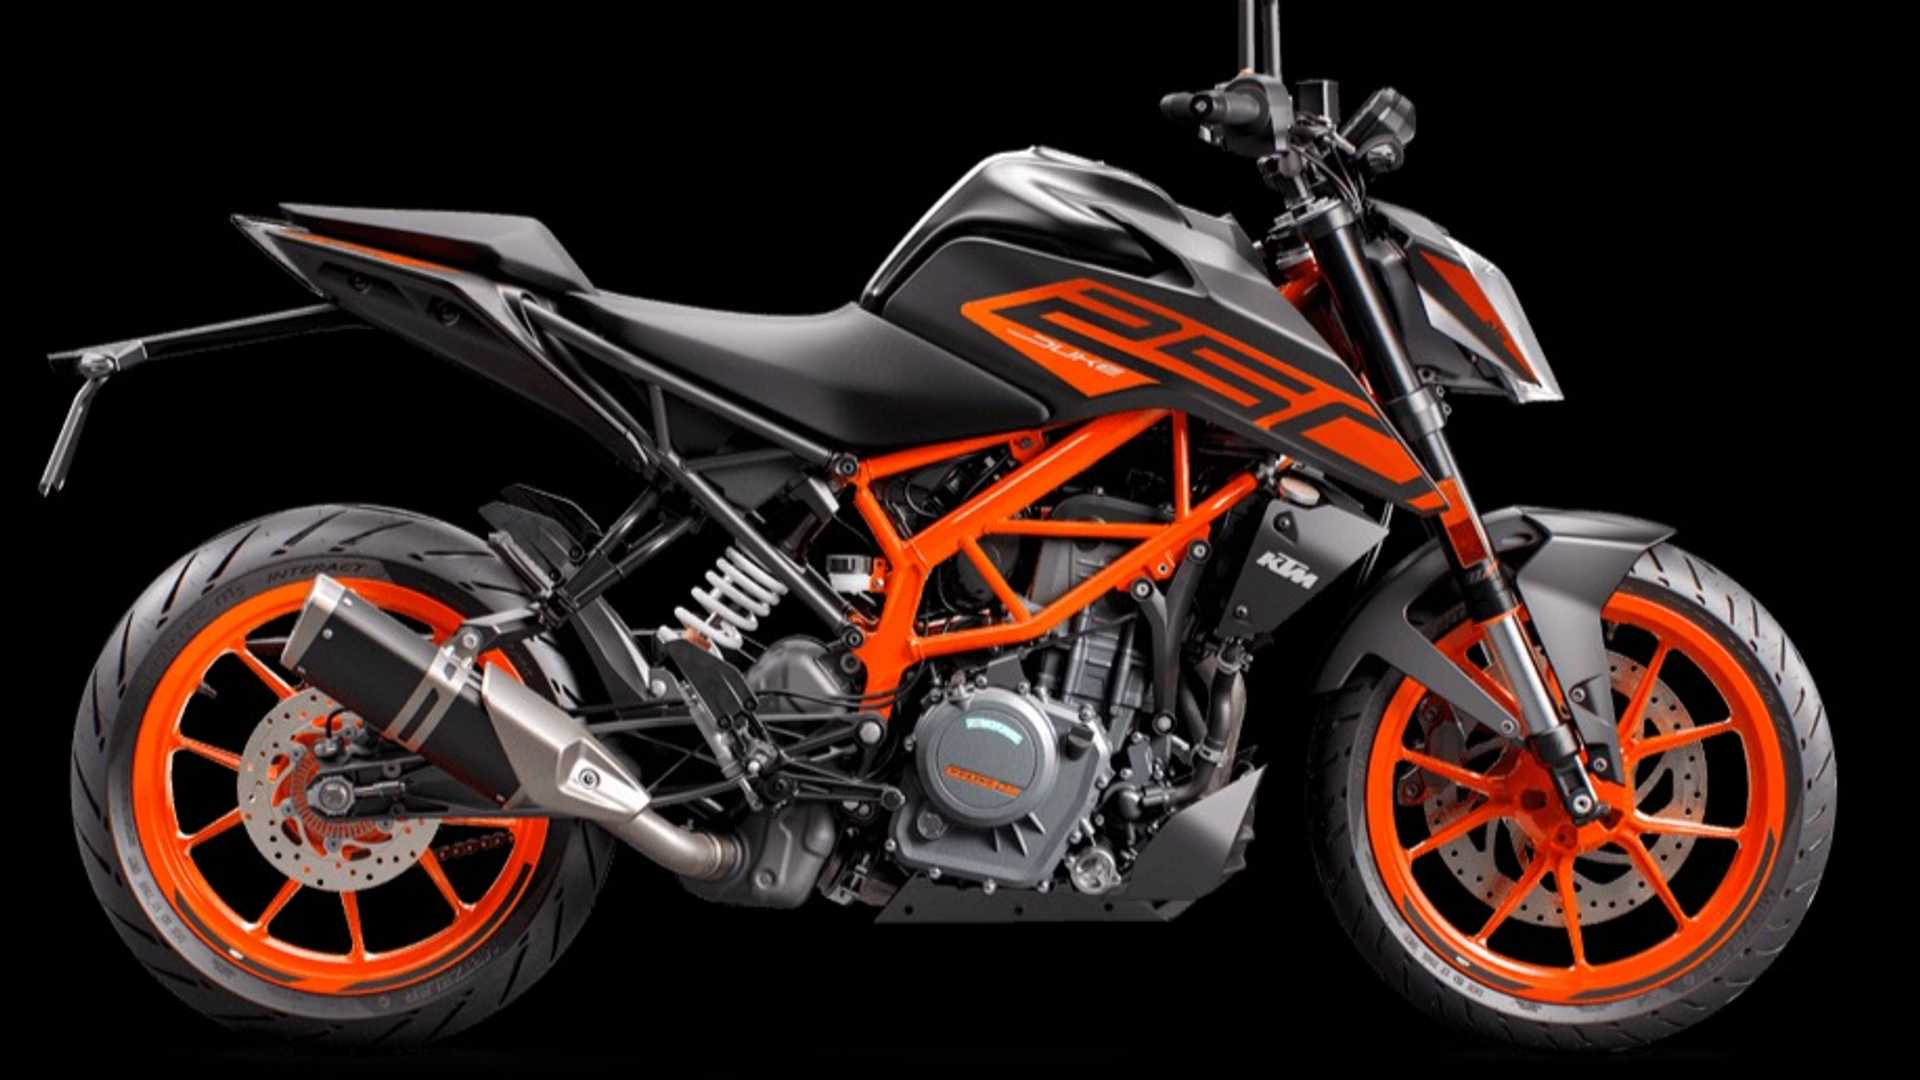 The BS6 KTM 250 Duke Gets Some Cool Updates